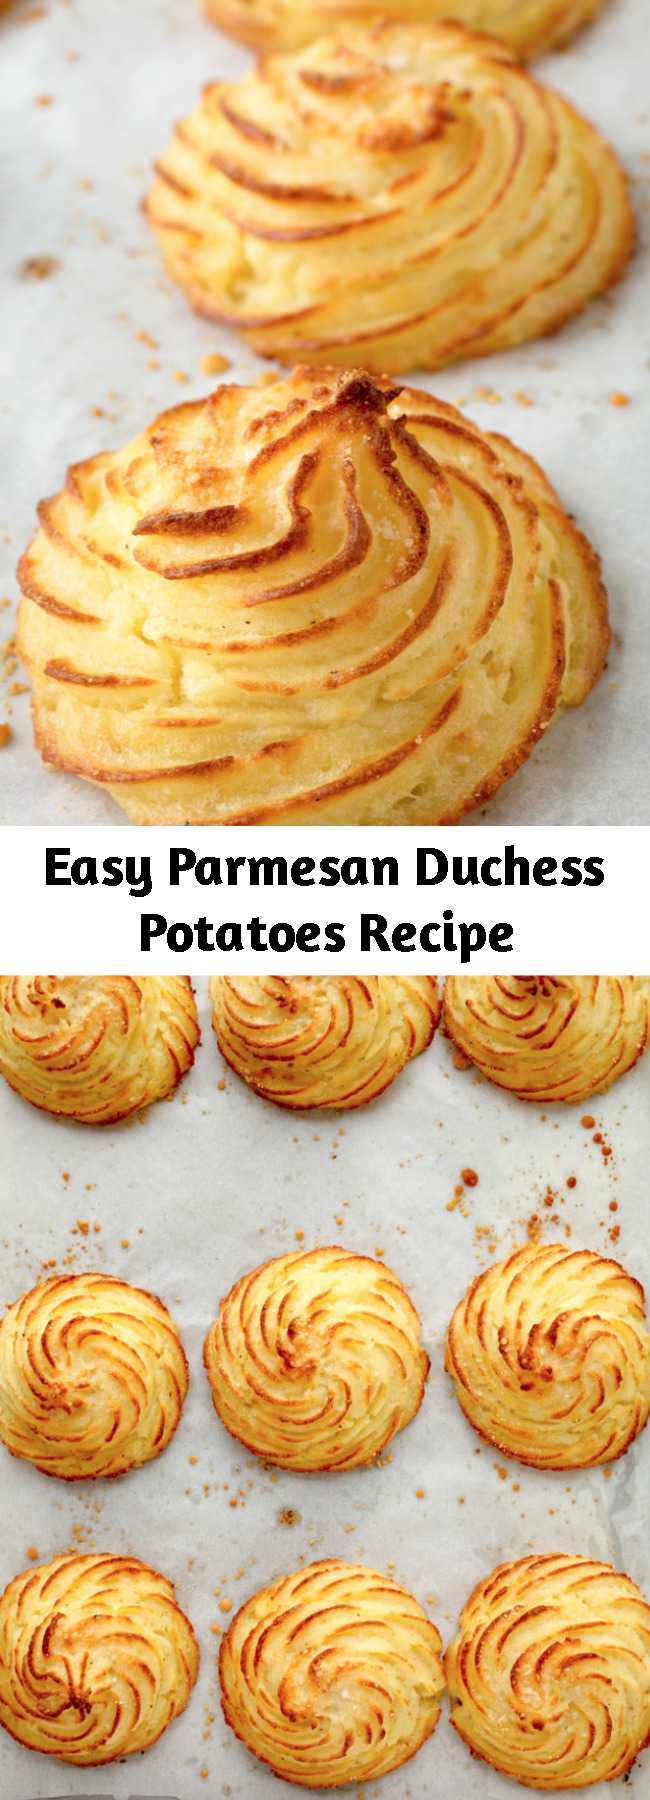 Easy Parmesan Duchess Potatoes Recipe - See how easy it is to elevate your mashed potatoes with this Duchess Potatoes recipe! These individually-piped potato puffs are a rich, elegant side dish for a special occasion dinner.